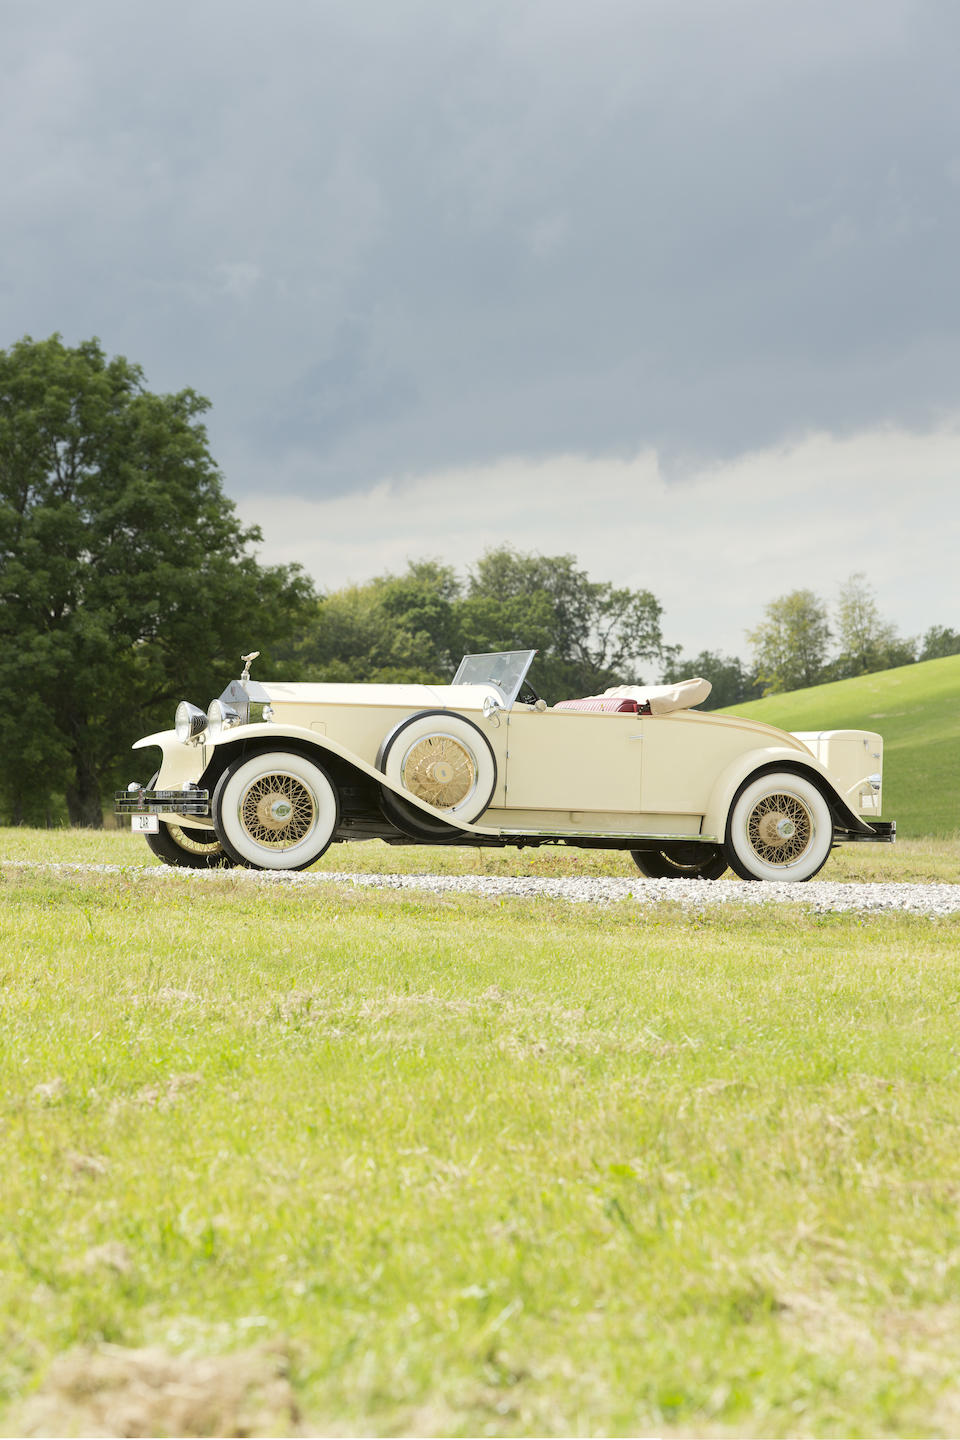 1931  ROLLS-ROYCE  PHANTOM I PLAYBOY ROADSTER  Chassis no. S186PR Engine no. 30860